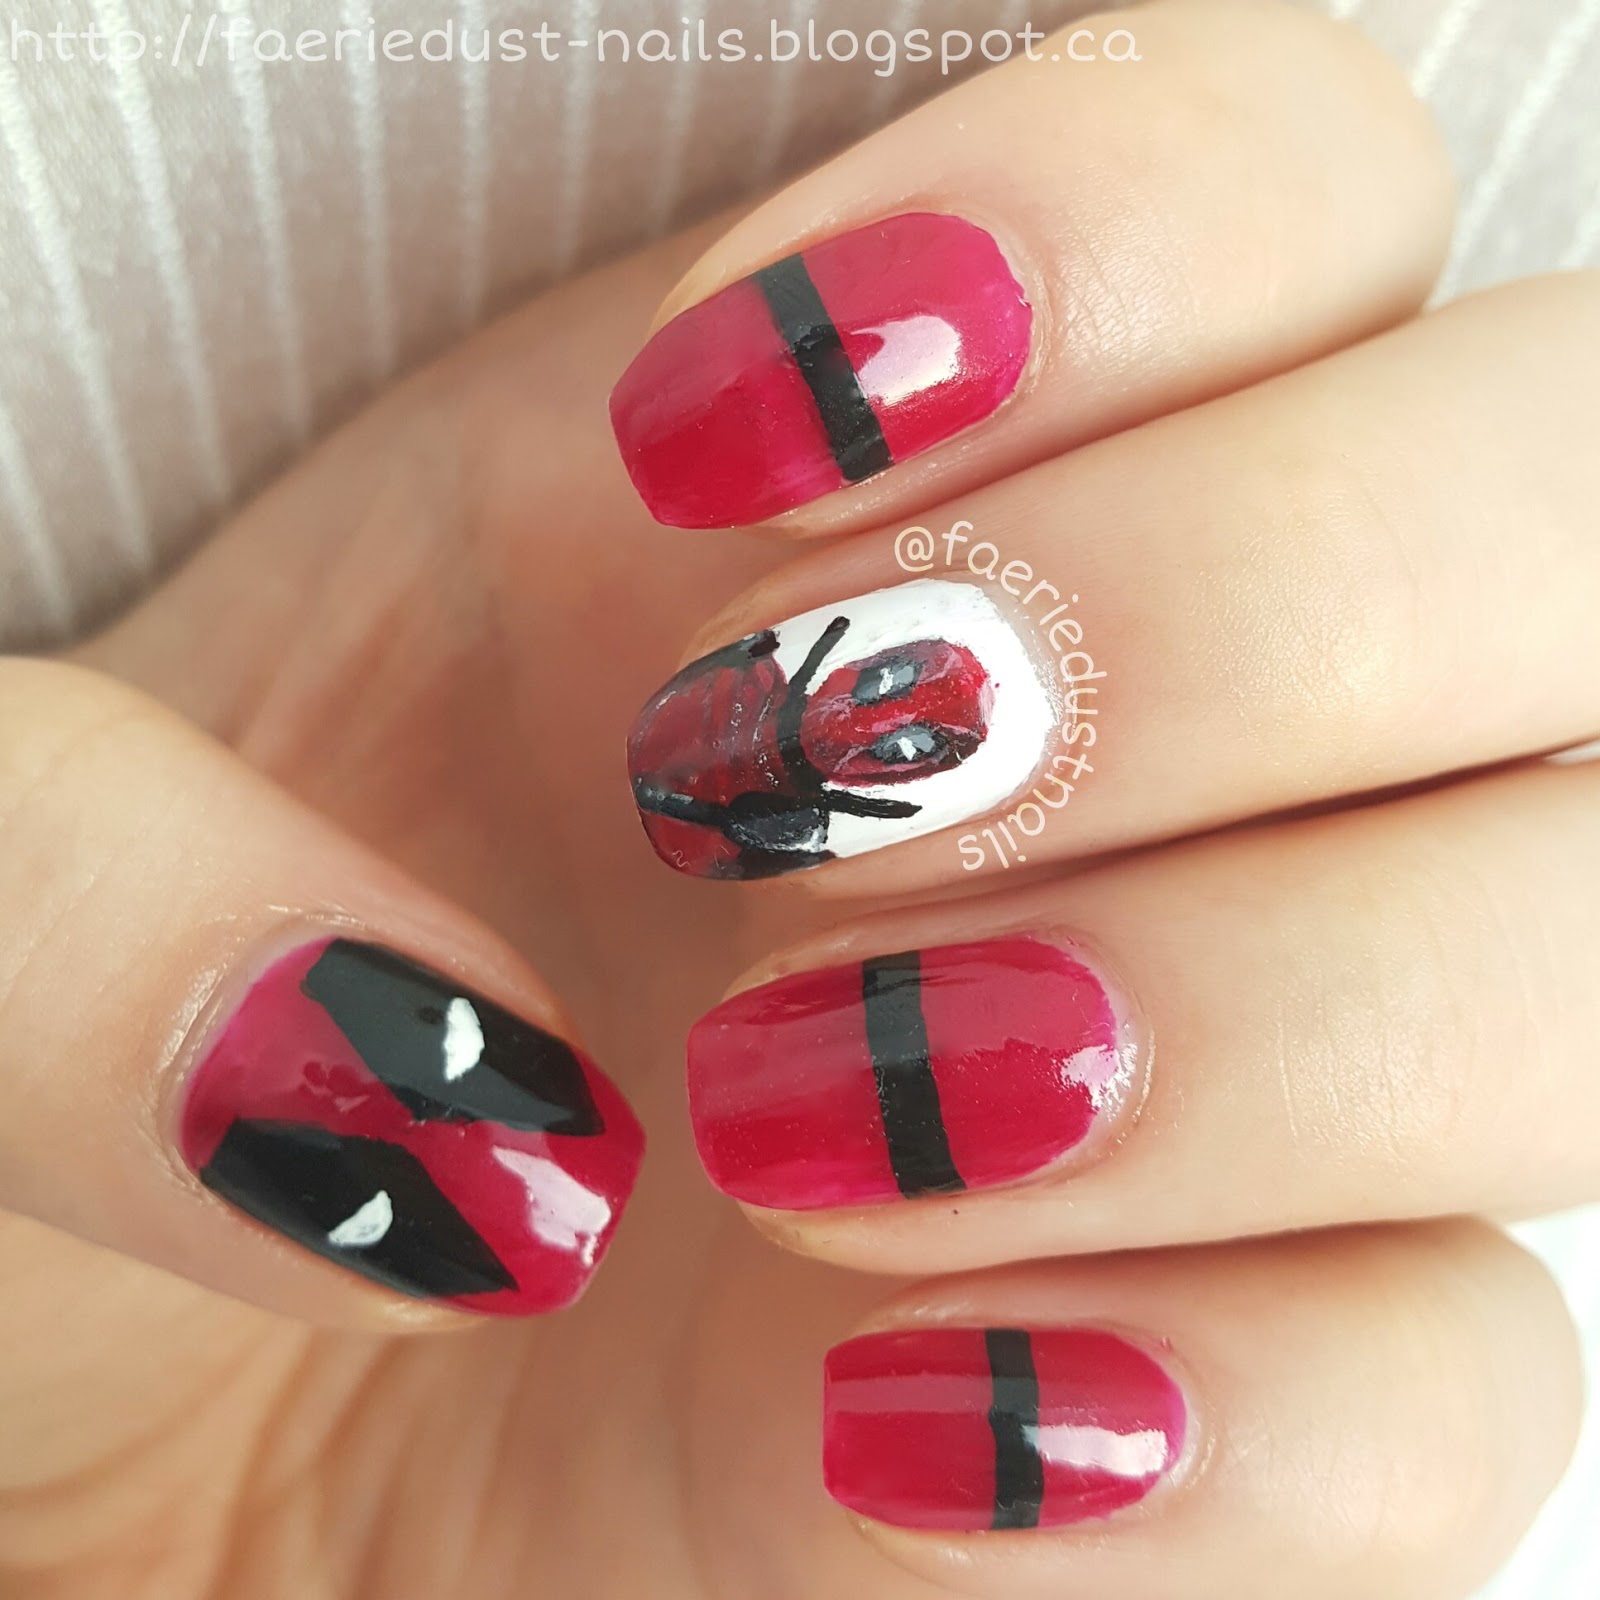 FaerieDust Nails: Deadpool Nails (With Pictorial)